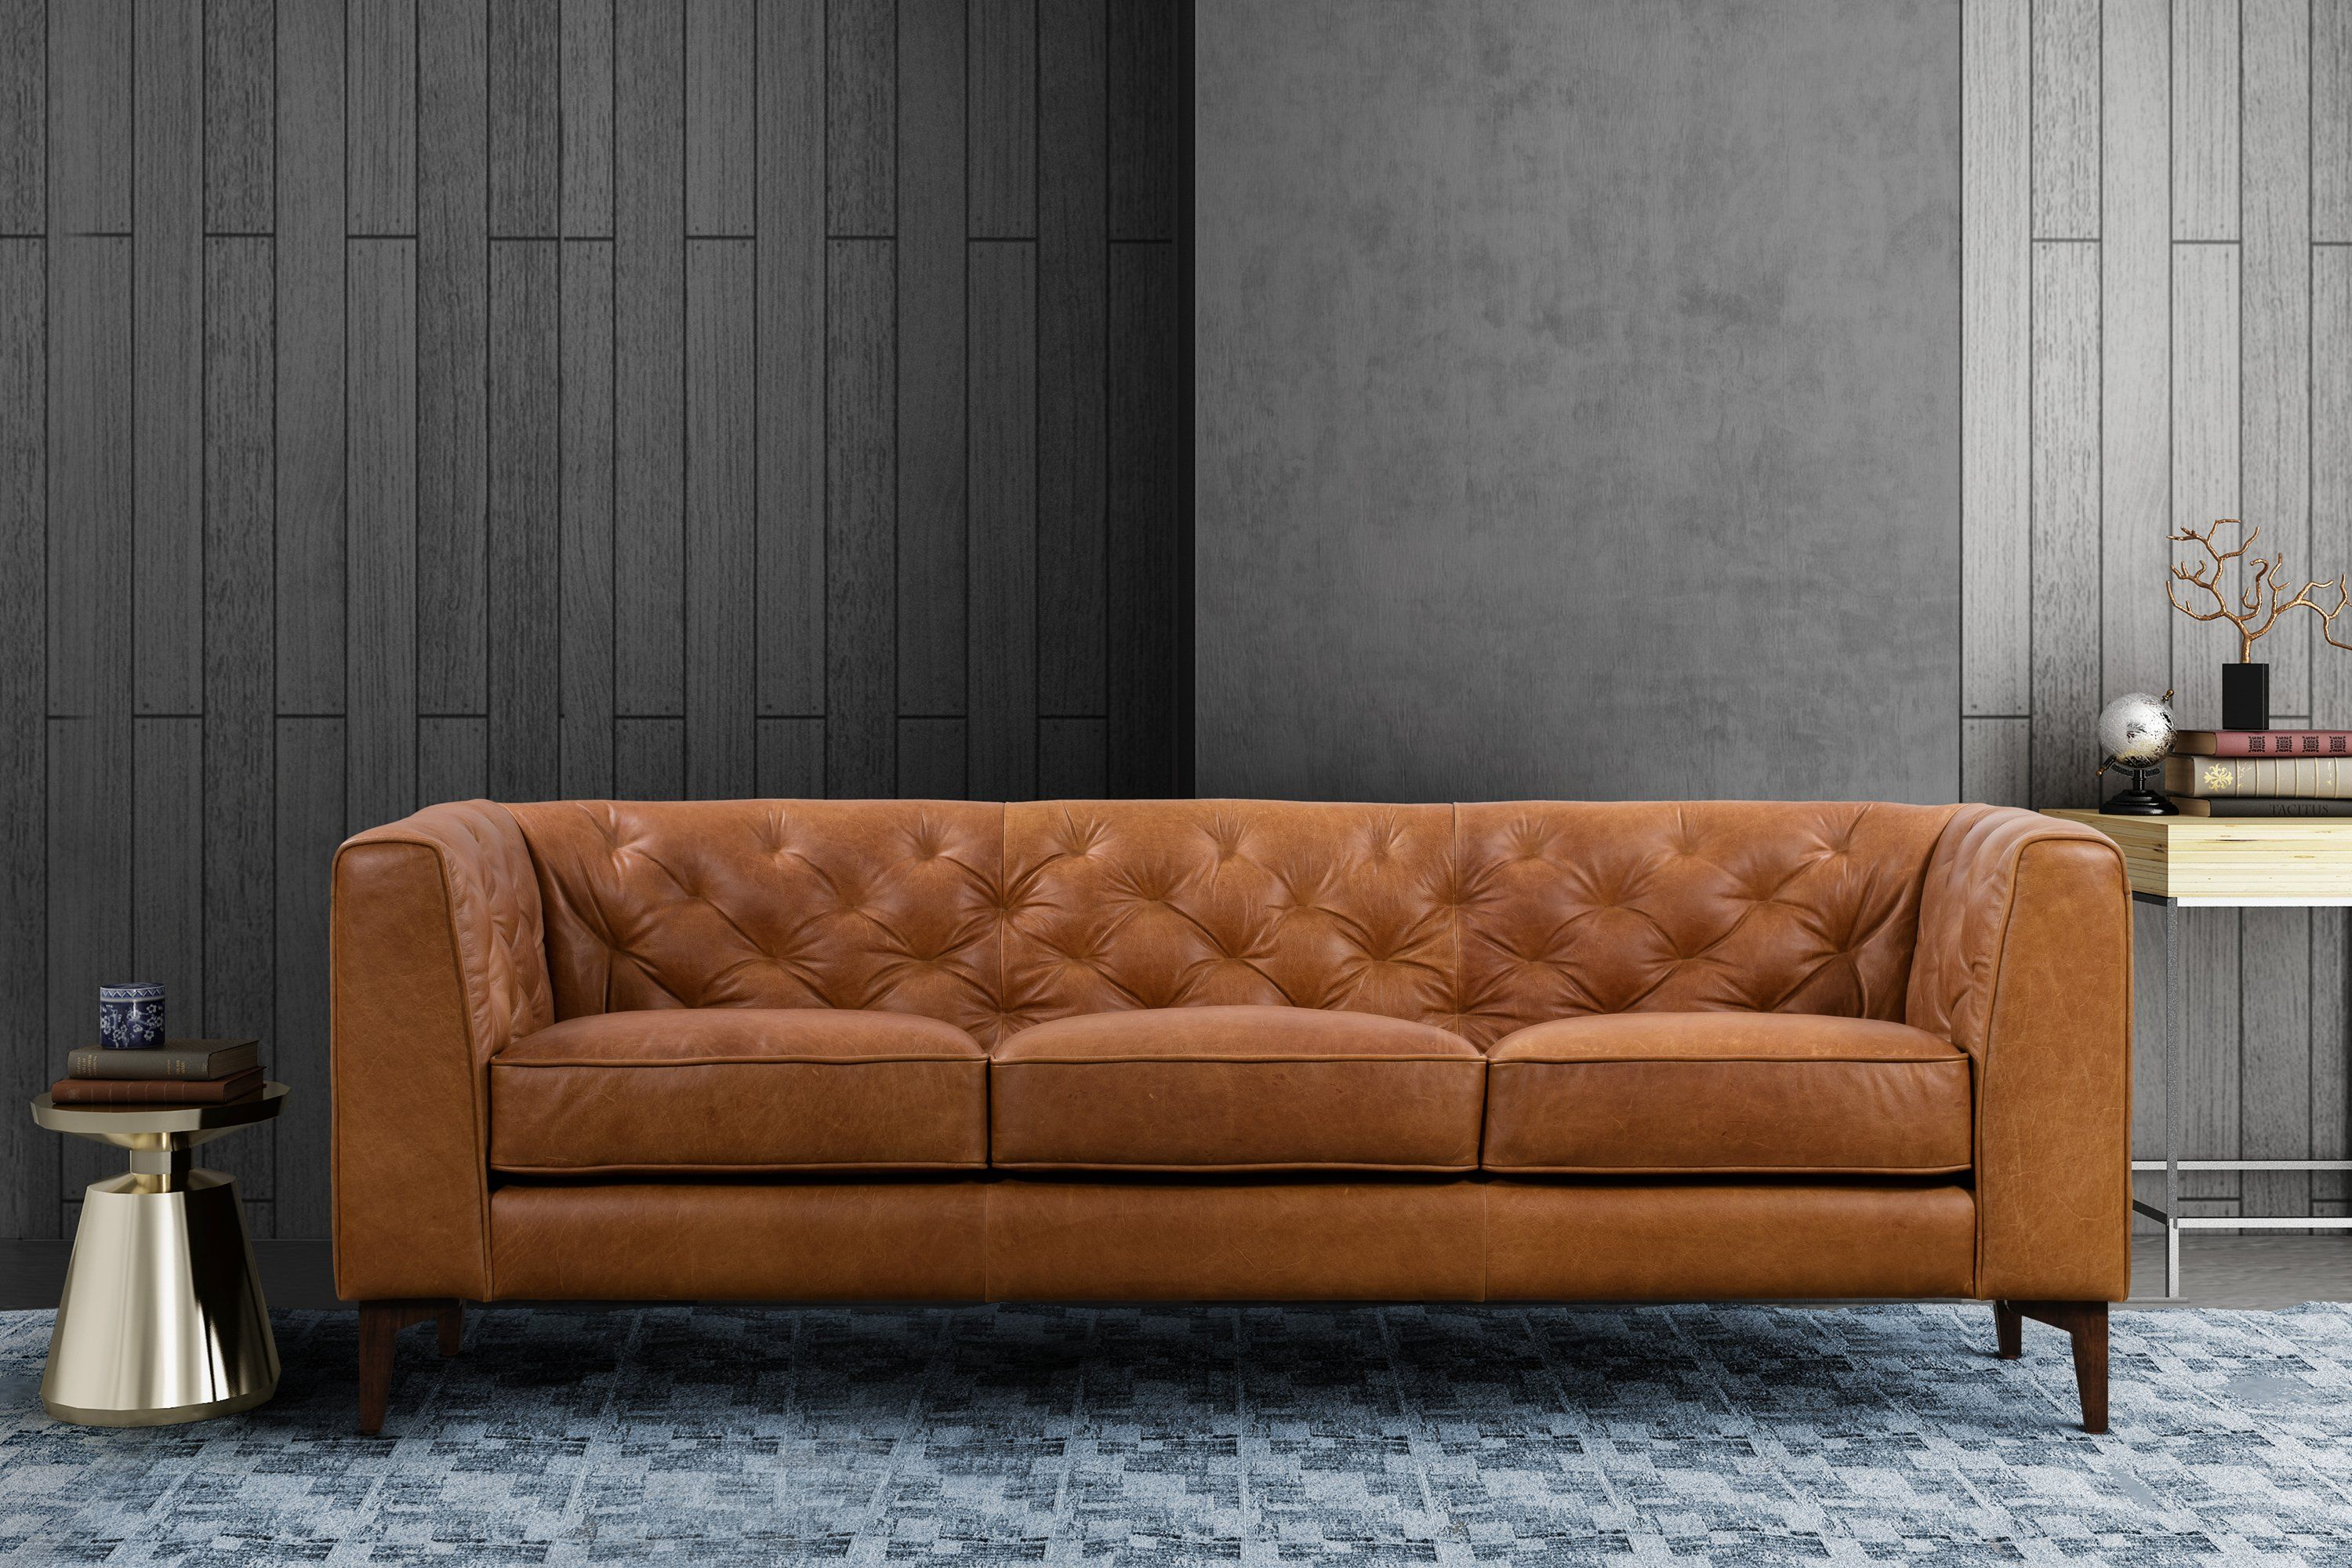 Essex Sofa Wooden Sofa Designs Sofa Leather Upholstery